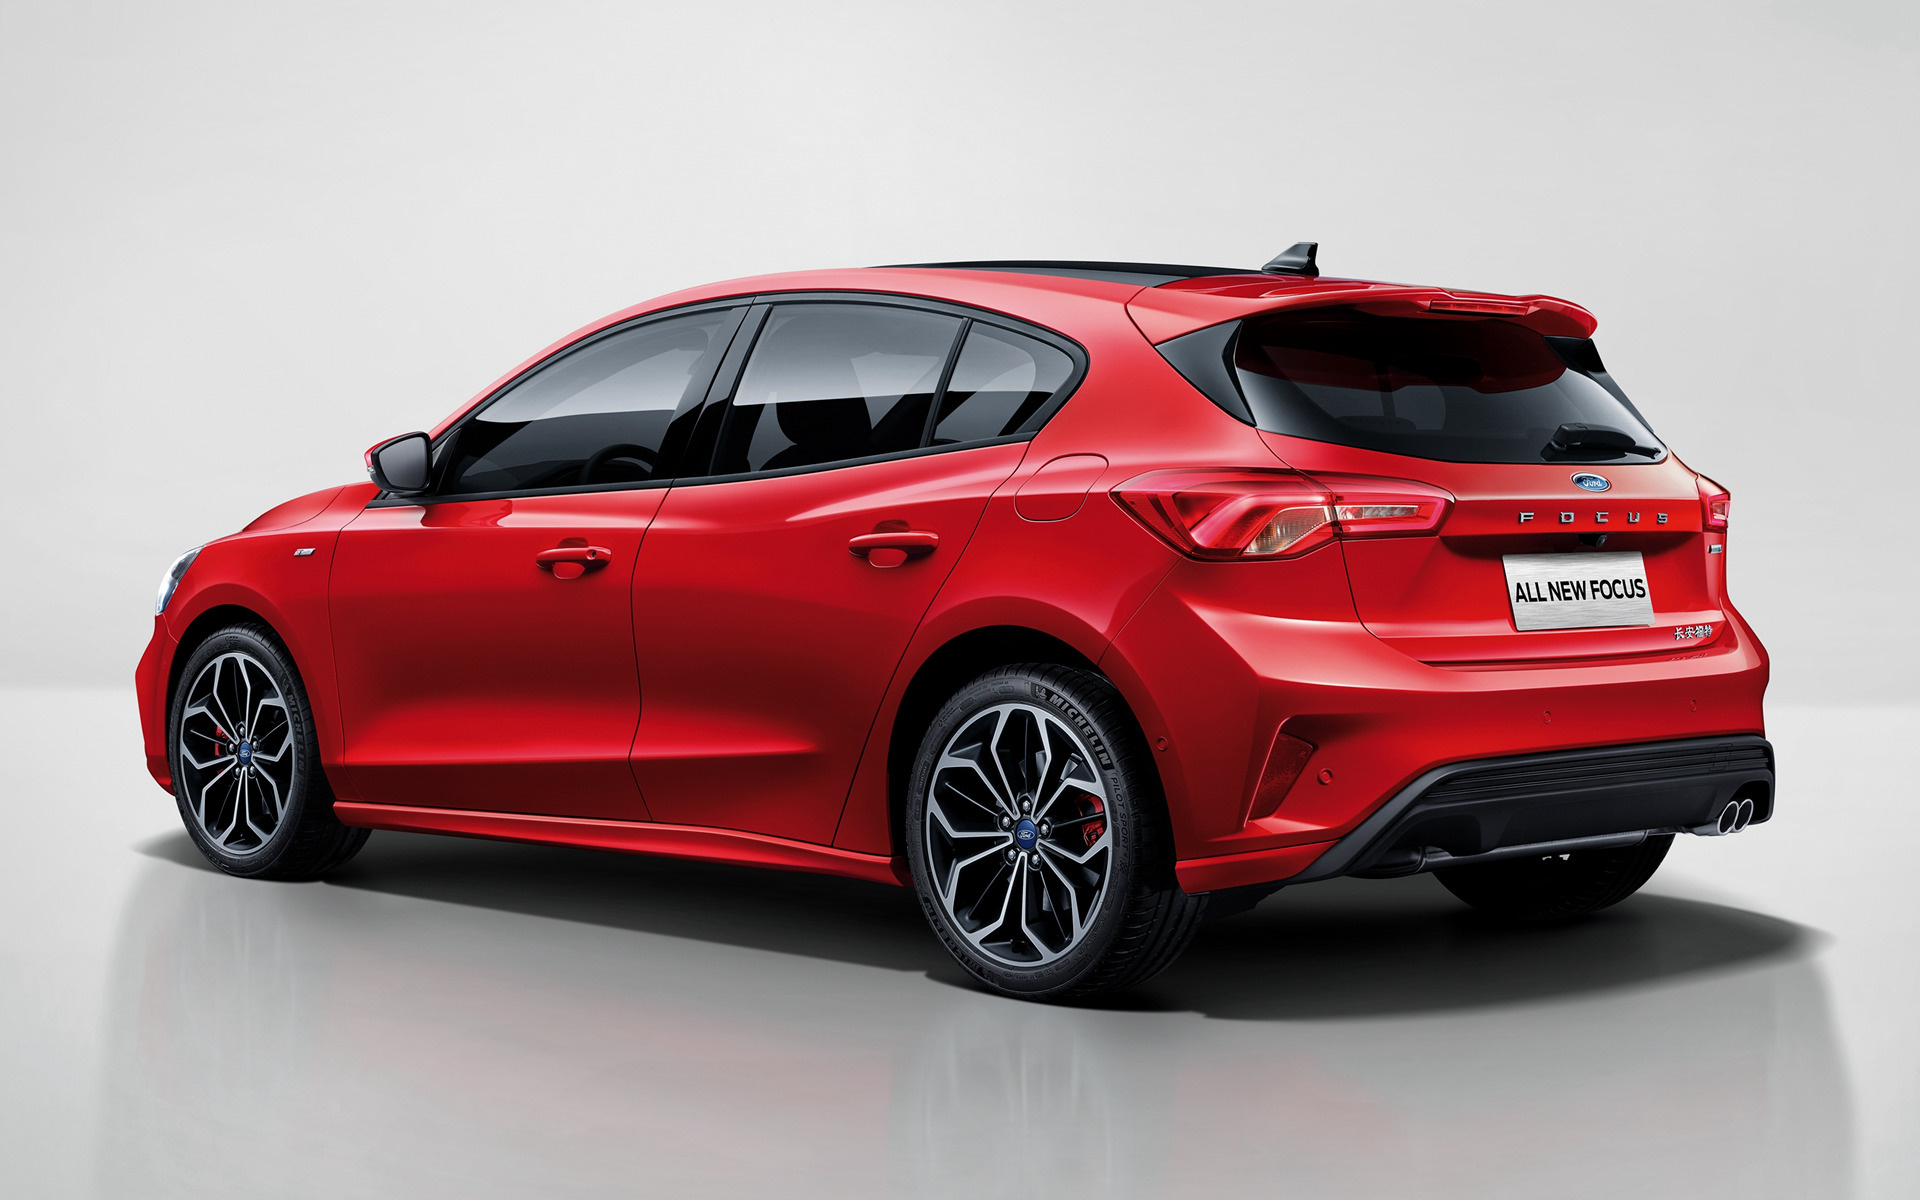 Ford Focus Stline (2018) Cn Wallpapers And Hd Images